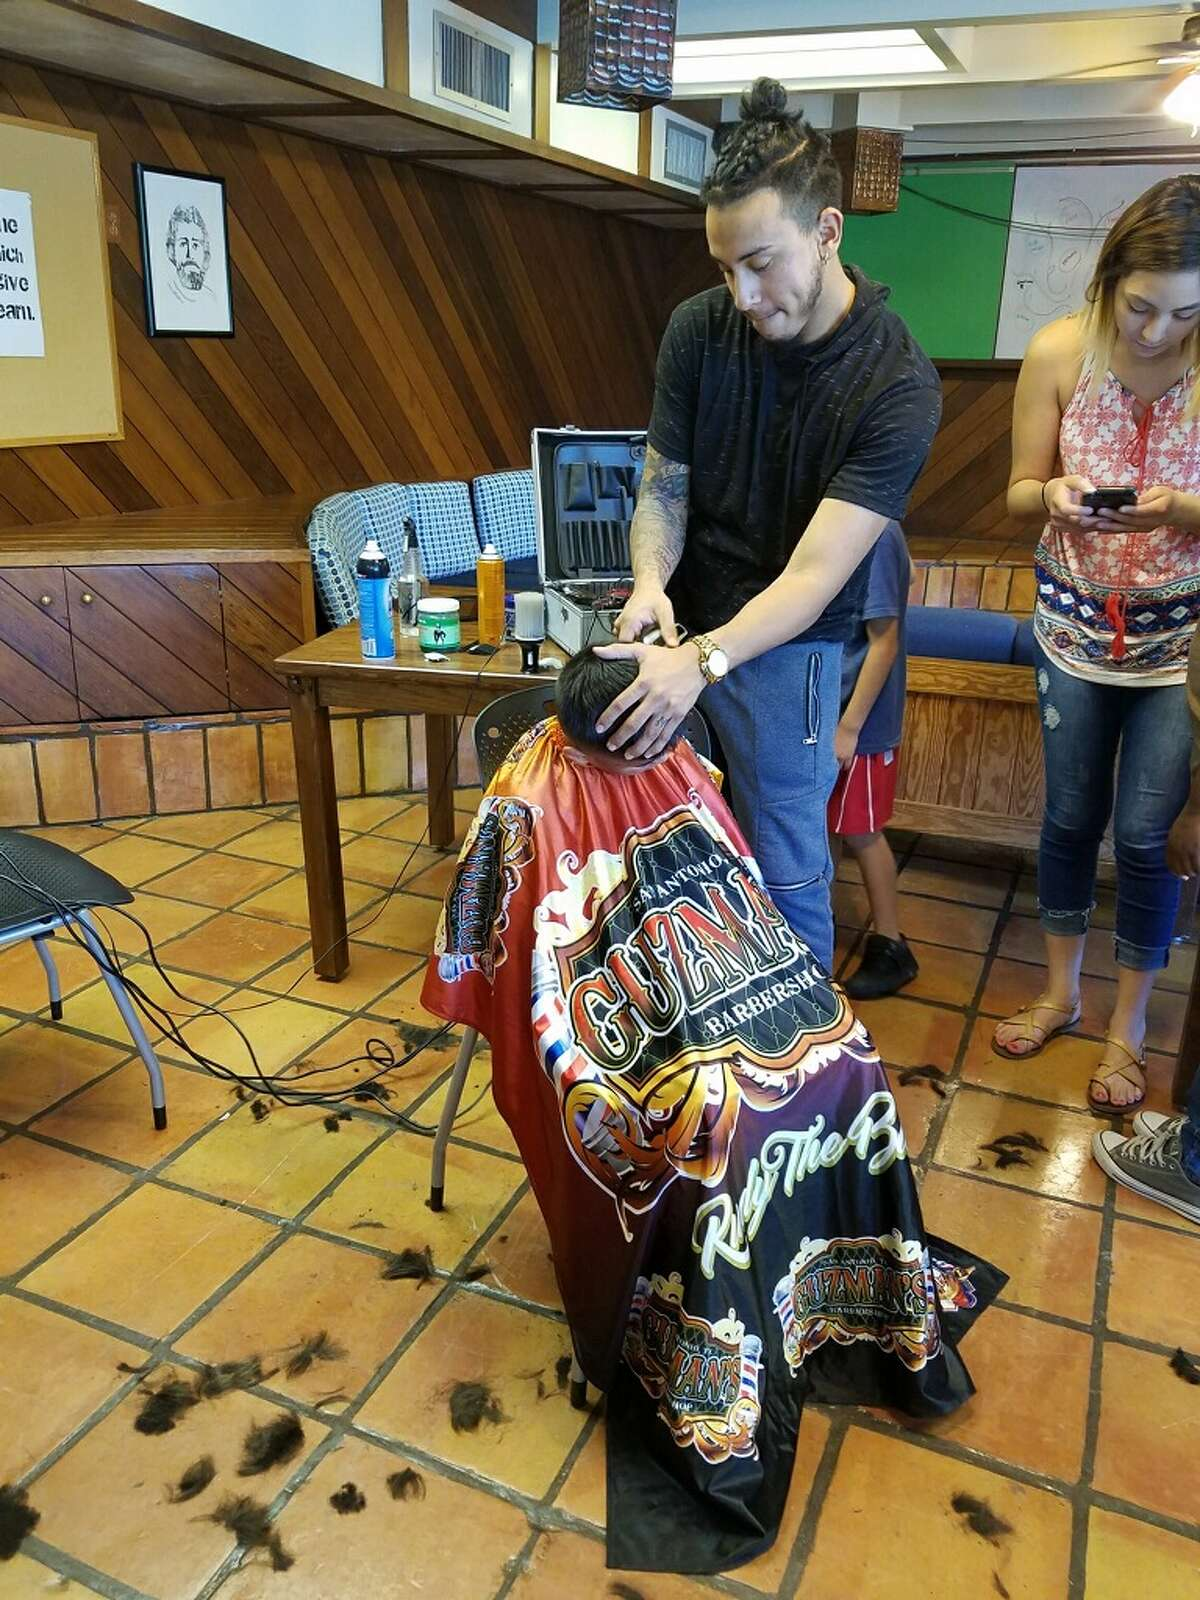 """This week, 22-year-old Rudy """"The Barber"""" Ibanez, proved he is still spreading goodwill throughout the city when gave 20 children haircuts at the Roy Maas Youth Alternative Meadowland Charter School in Boerne."""